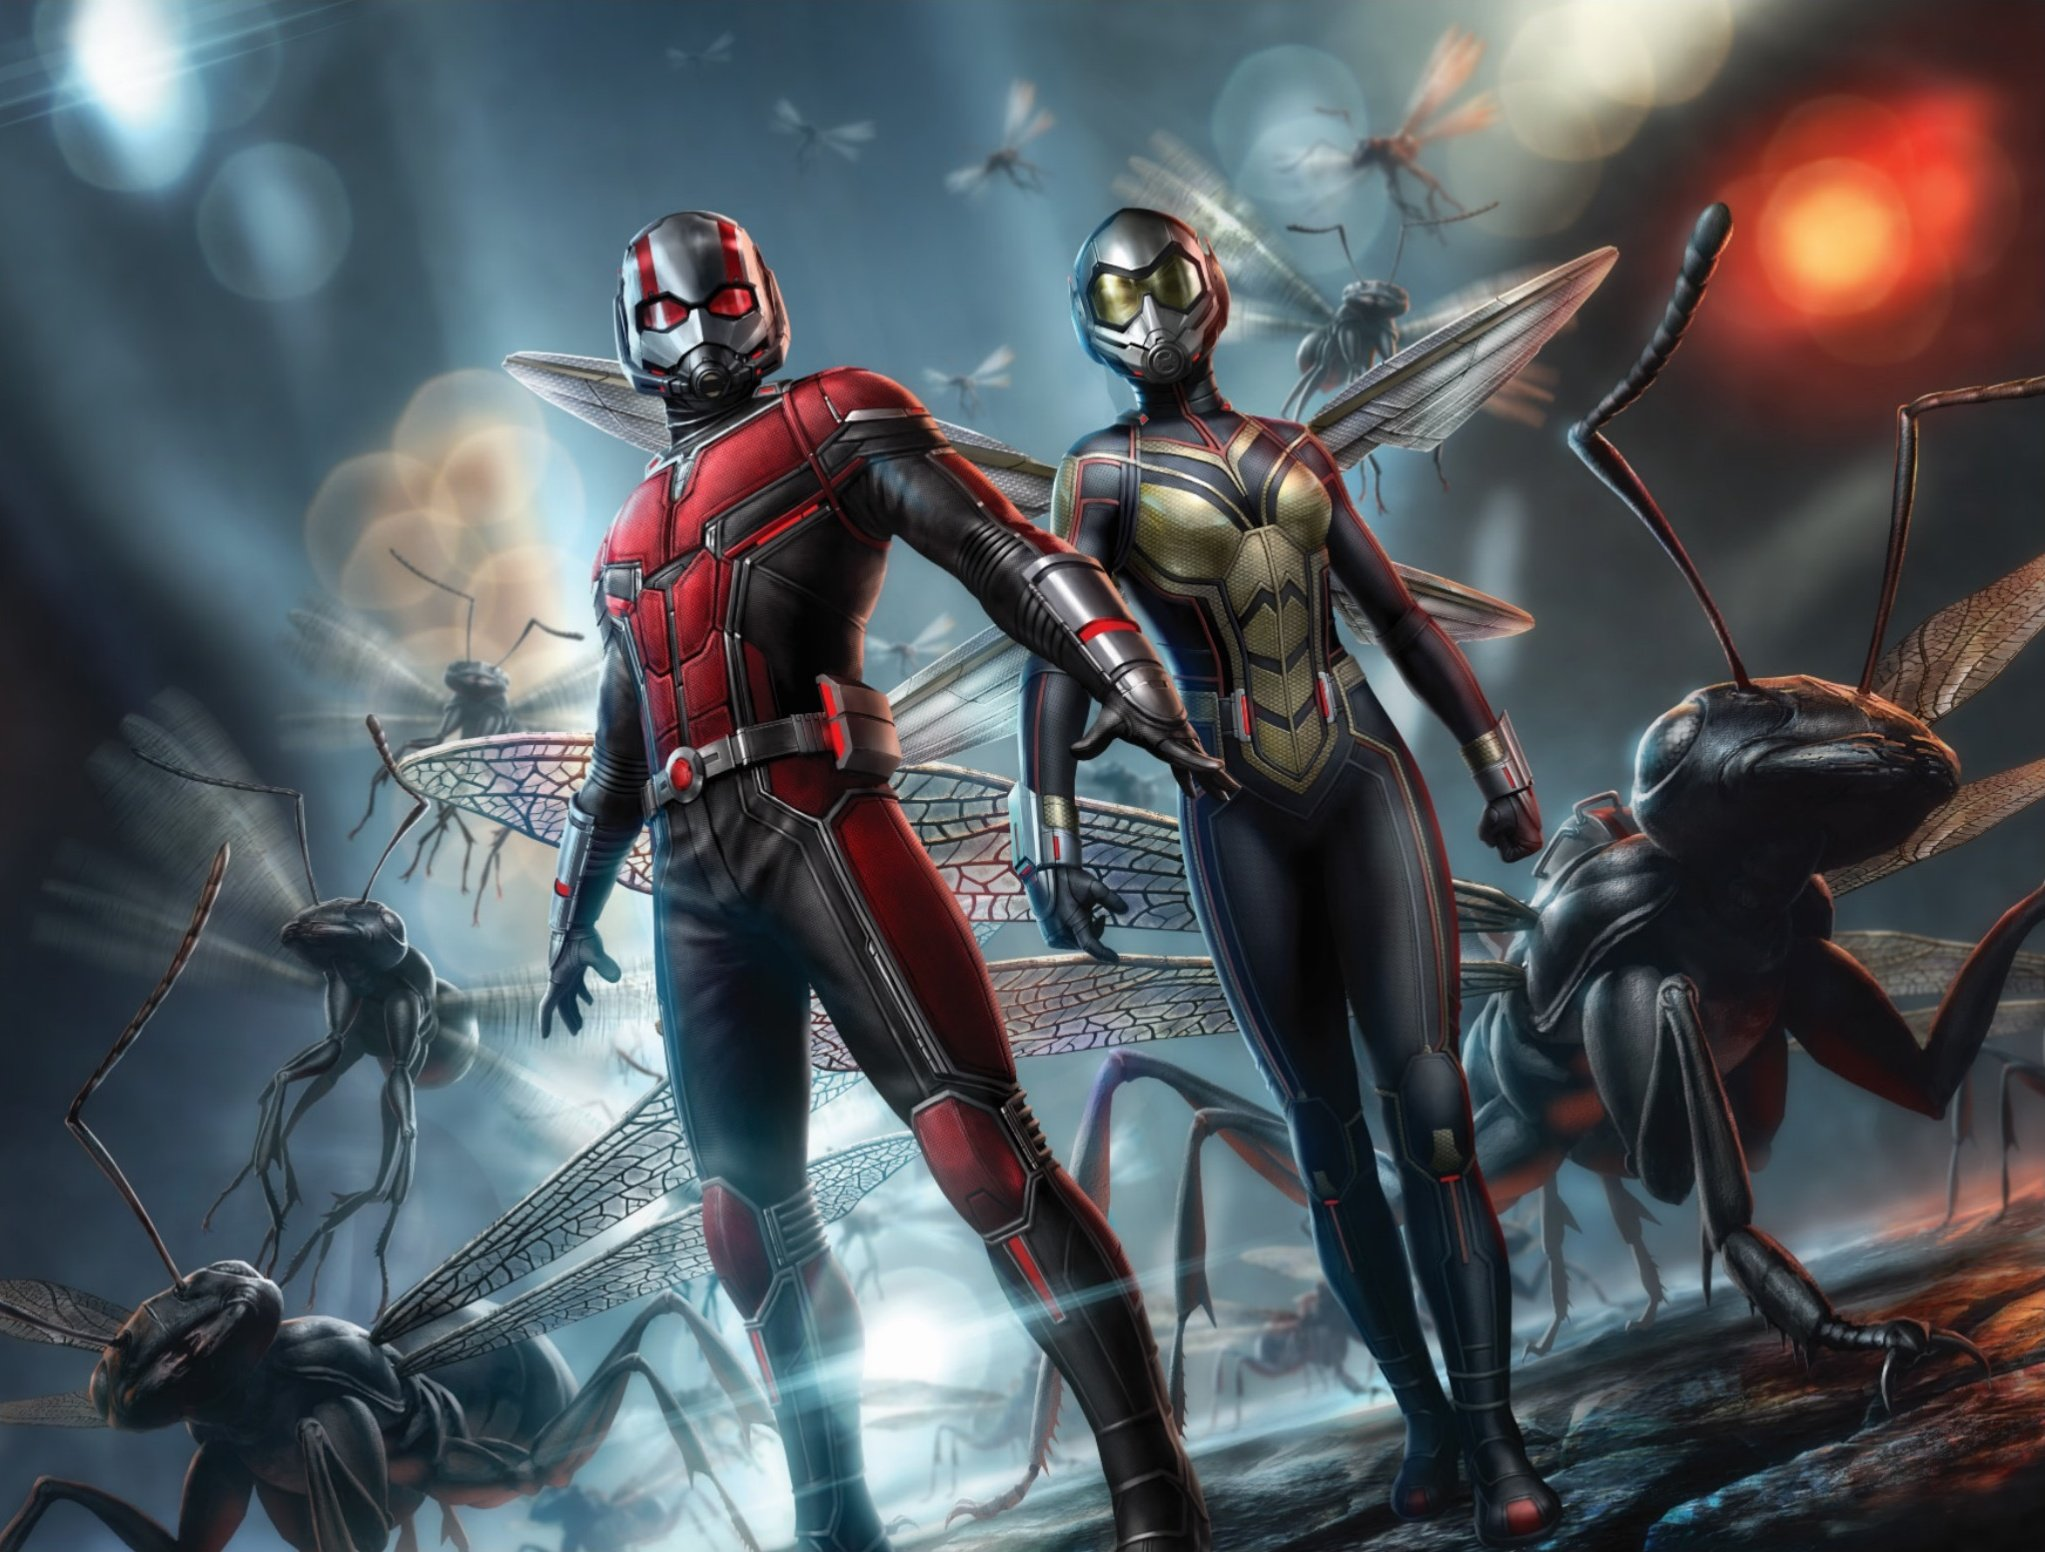 Epic Ant Man And The Wasp Promo Art Scurries Online